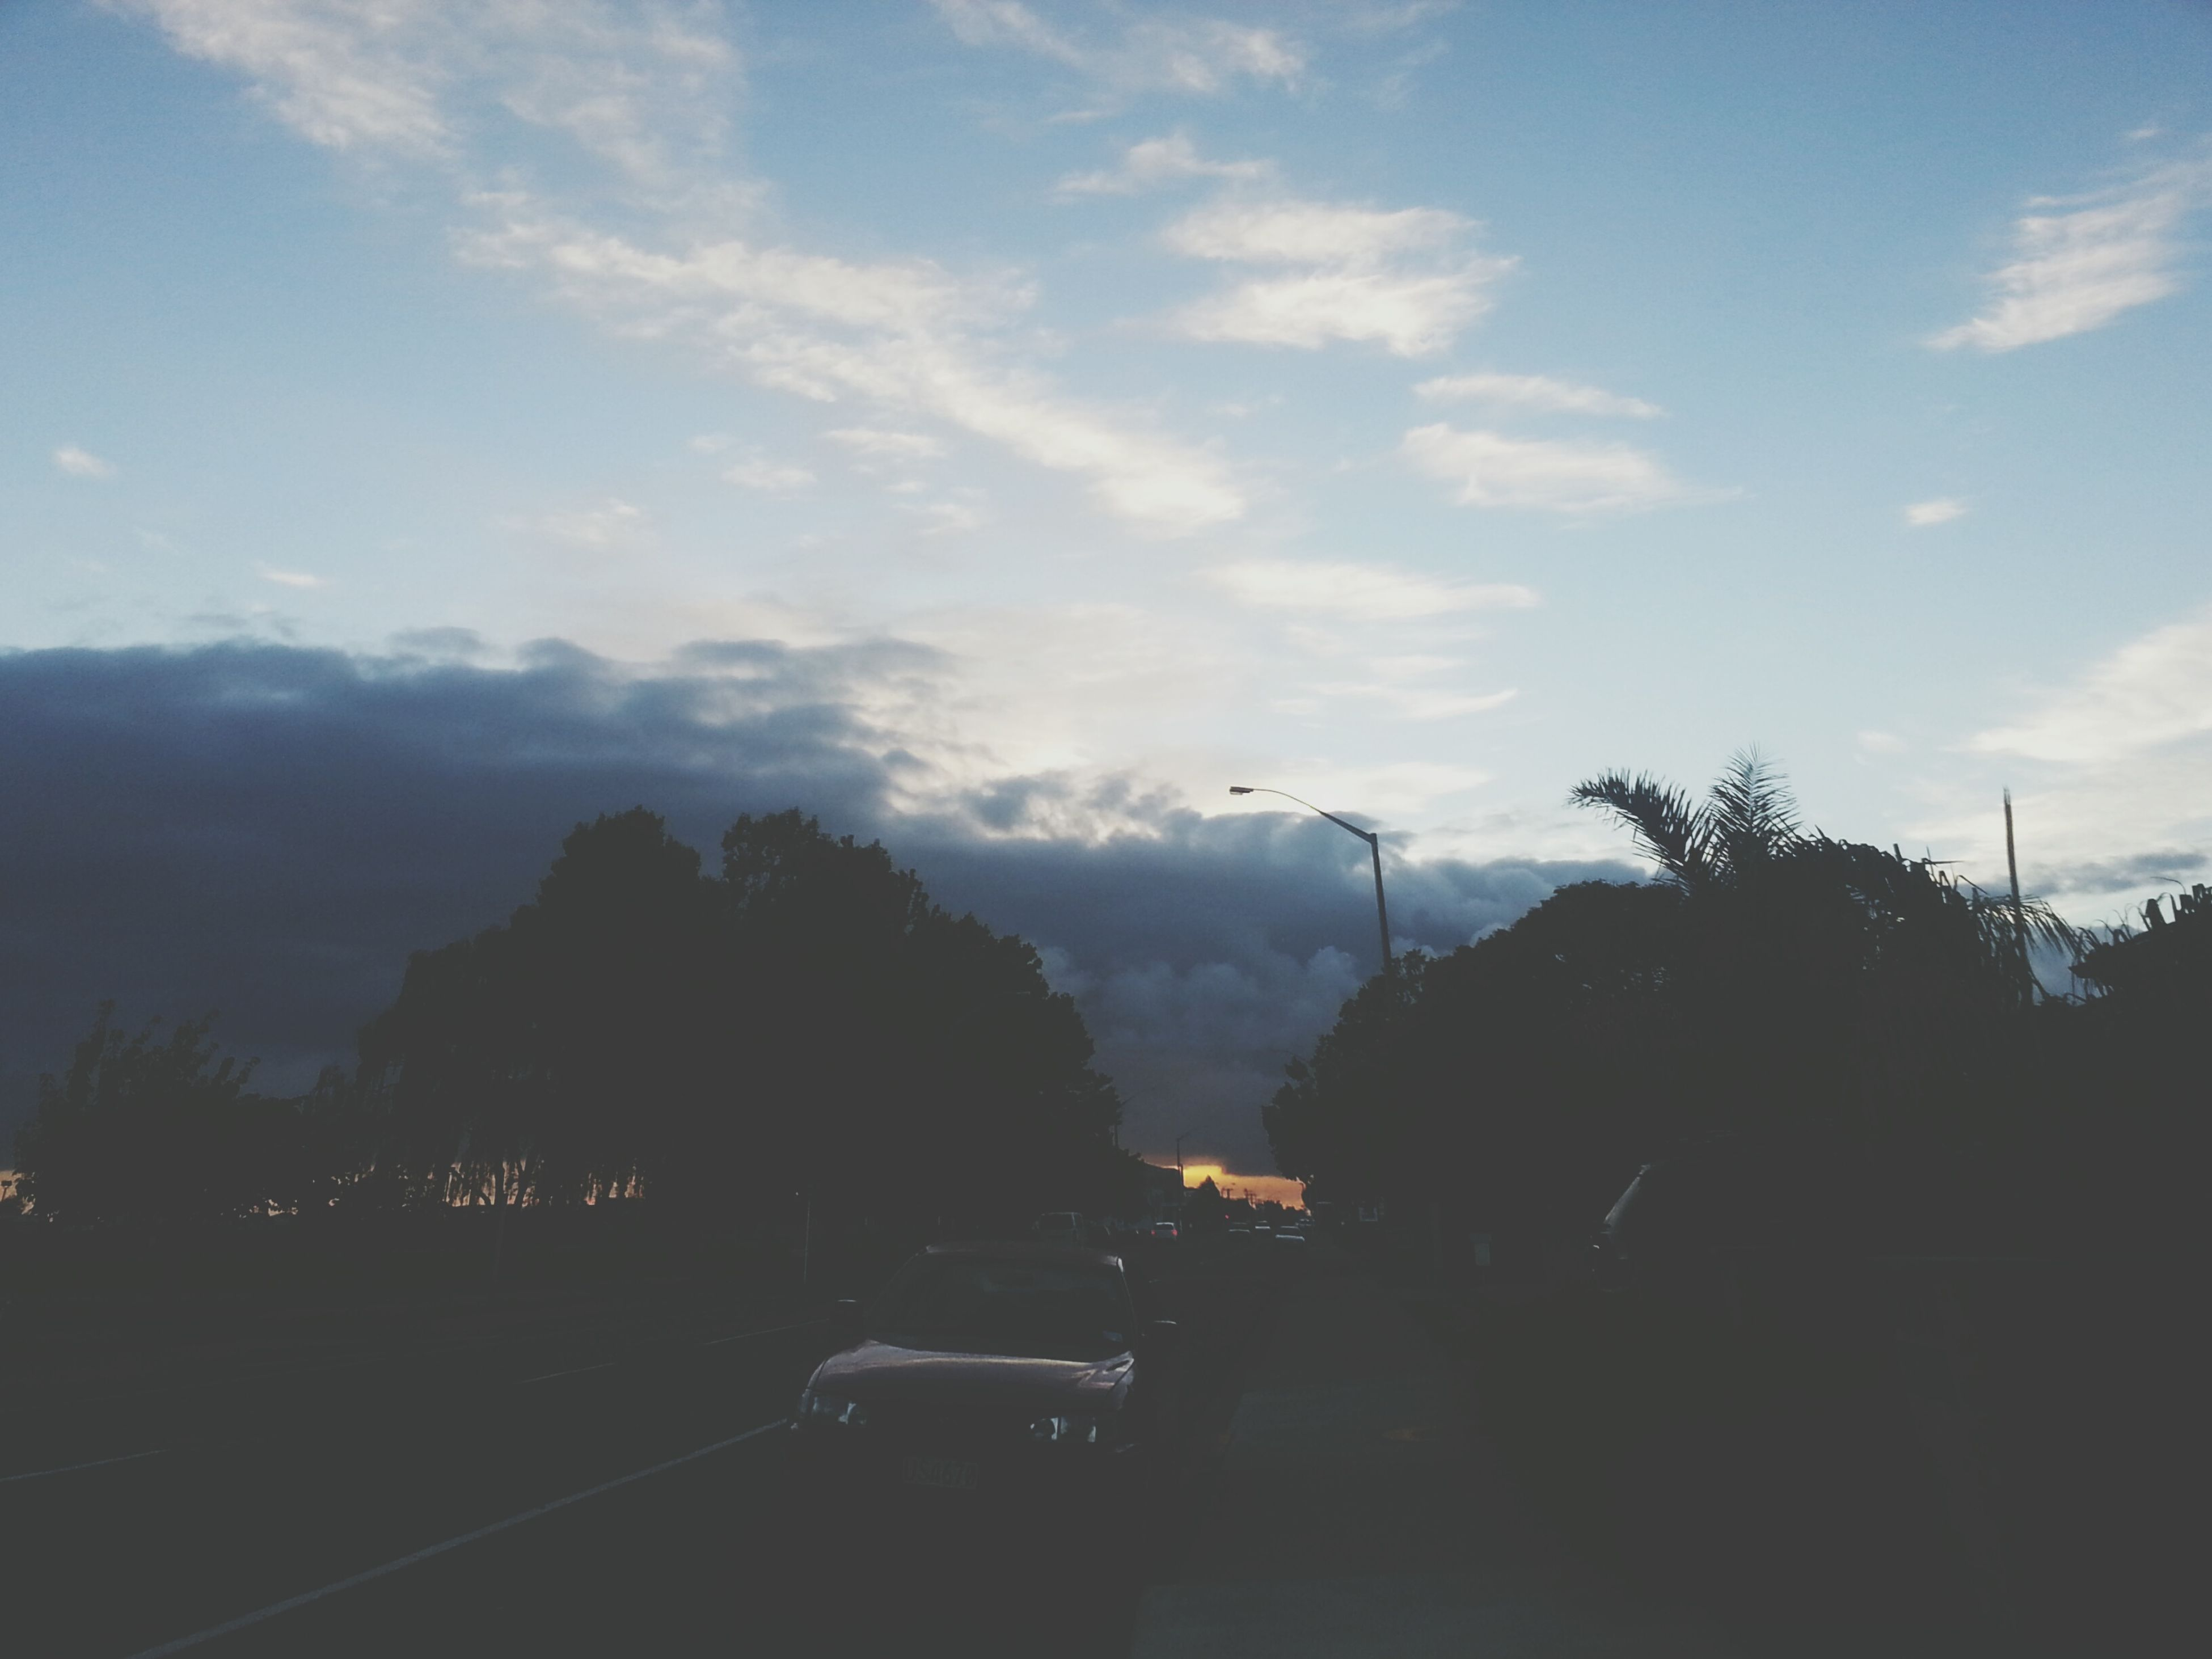 sky, transportation, silhouette, car, mode of transport, cloud - sky, road, land vehicle, tree, cloud, dusk, sunset, nature, mountain, scenics, street, beauty in nature, outdoors, tranquility, cloudy